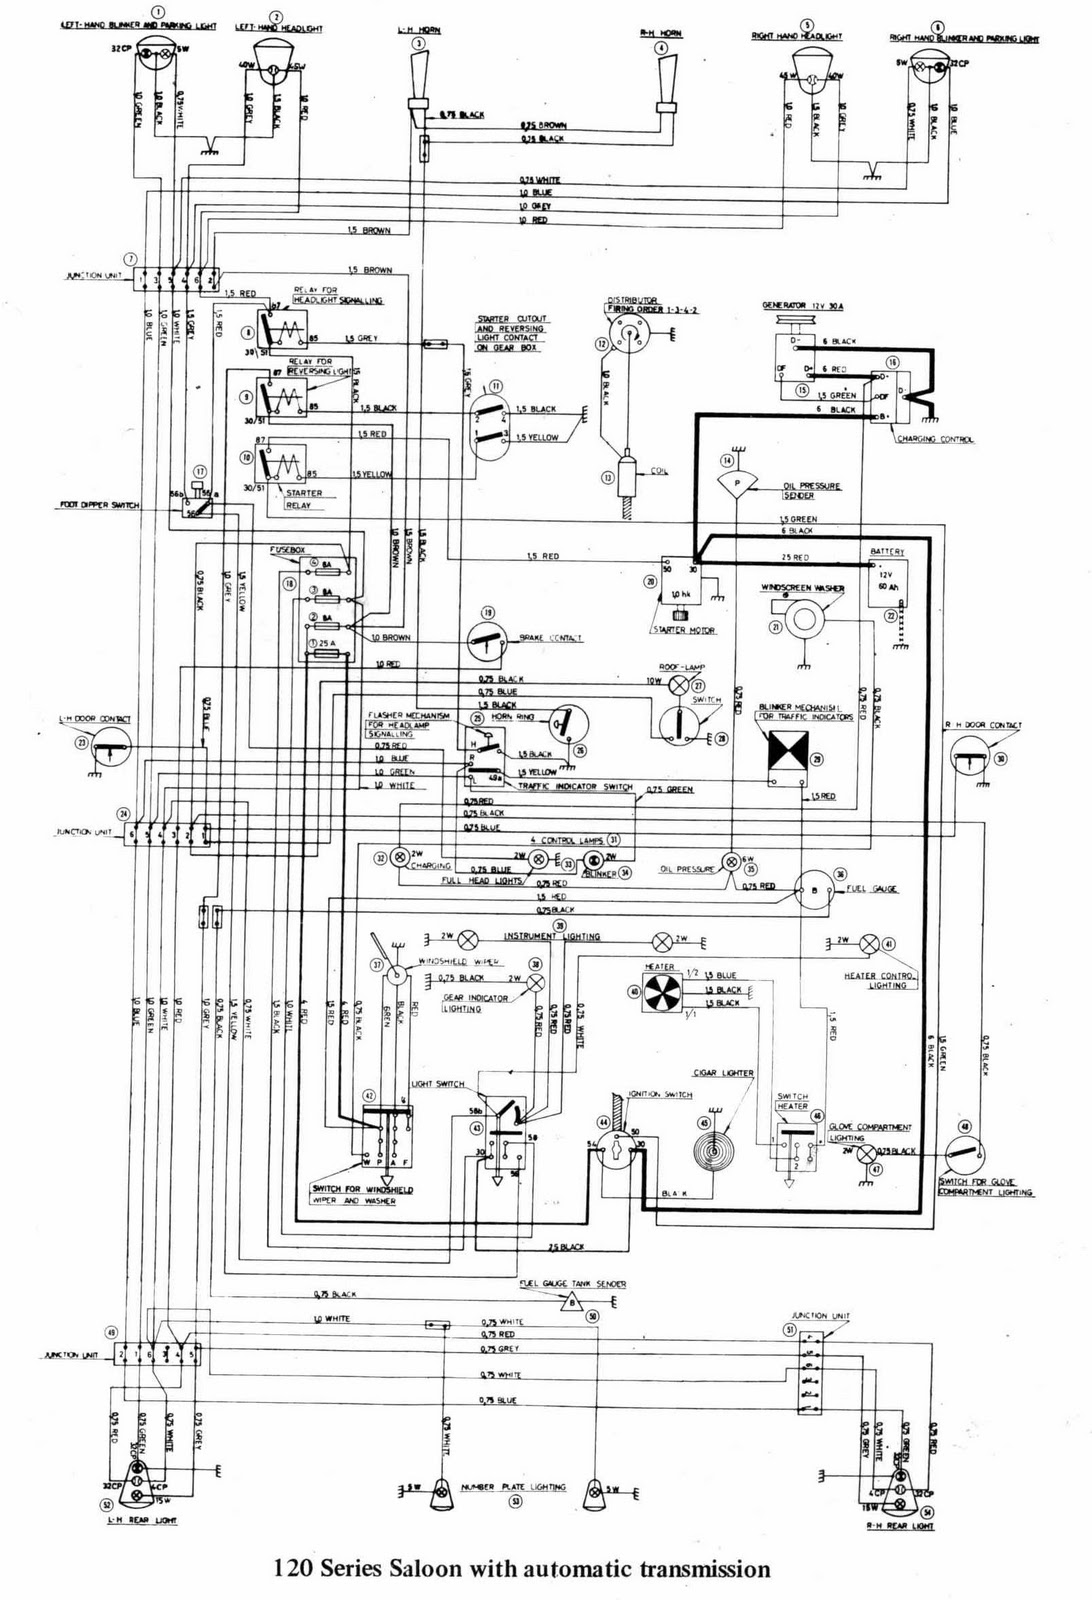 wiring diagram 1998 volvo v70 glt wiring diagram third level rh 17 19 13 jacobwinterstein com 2001 volvo s60 engine diagram volvo s80 wiring diagram [ 1092 x 1600 Pixel ]